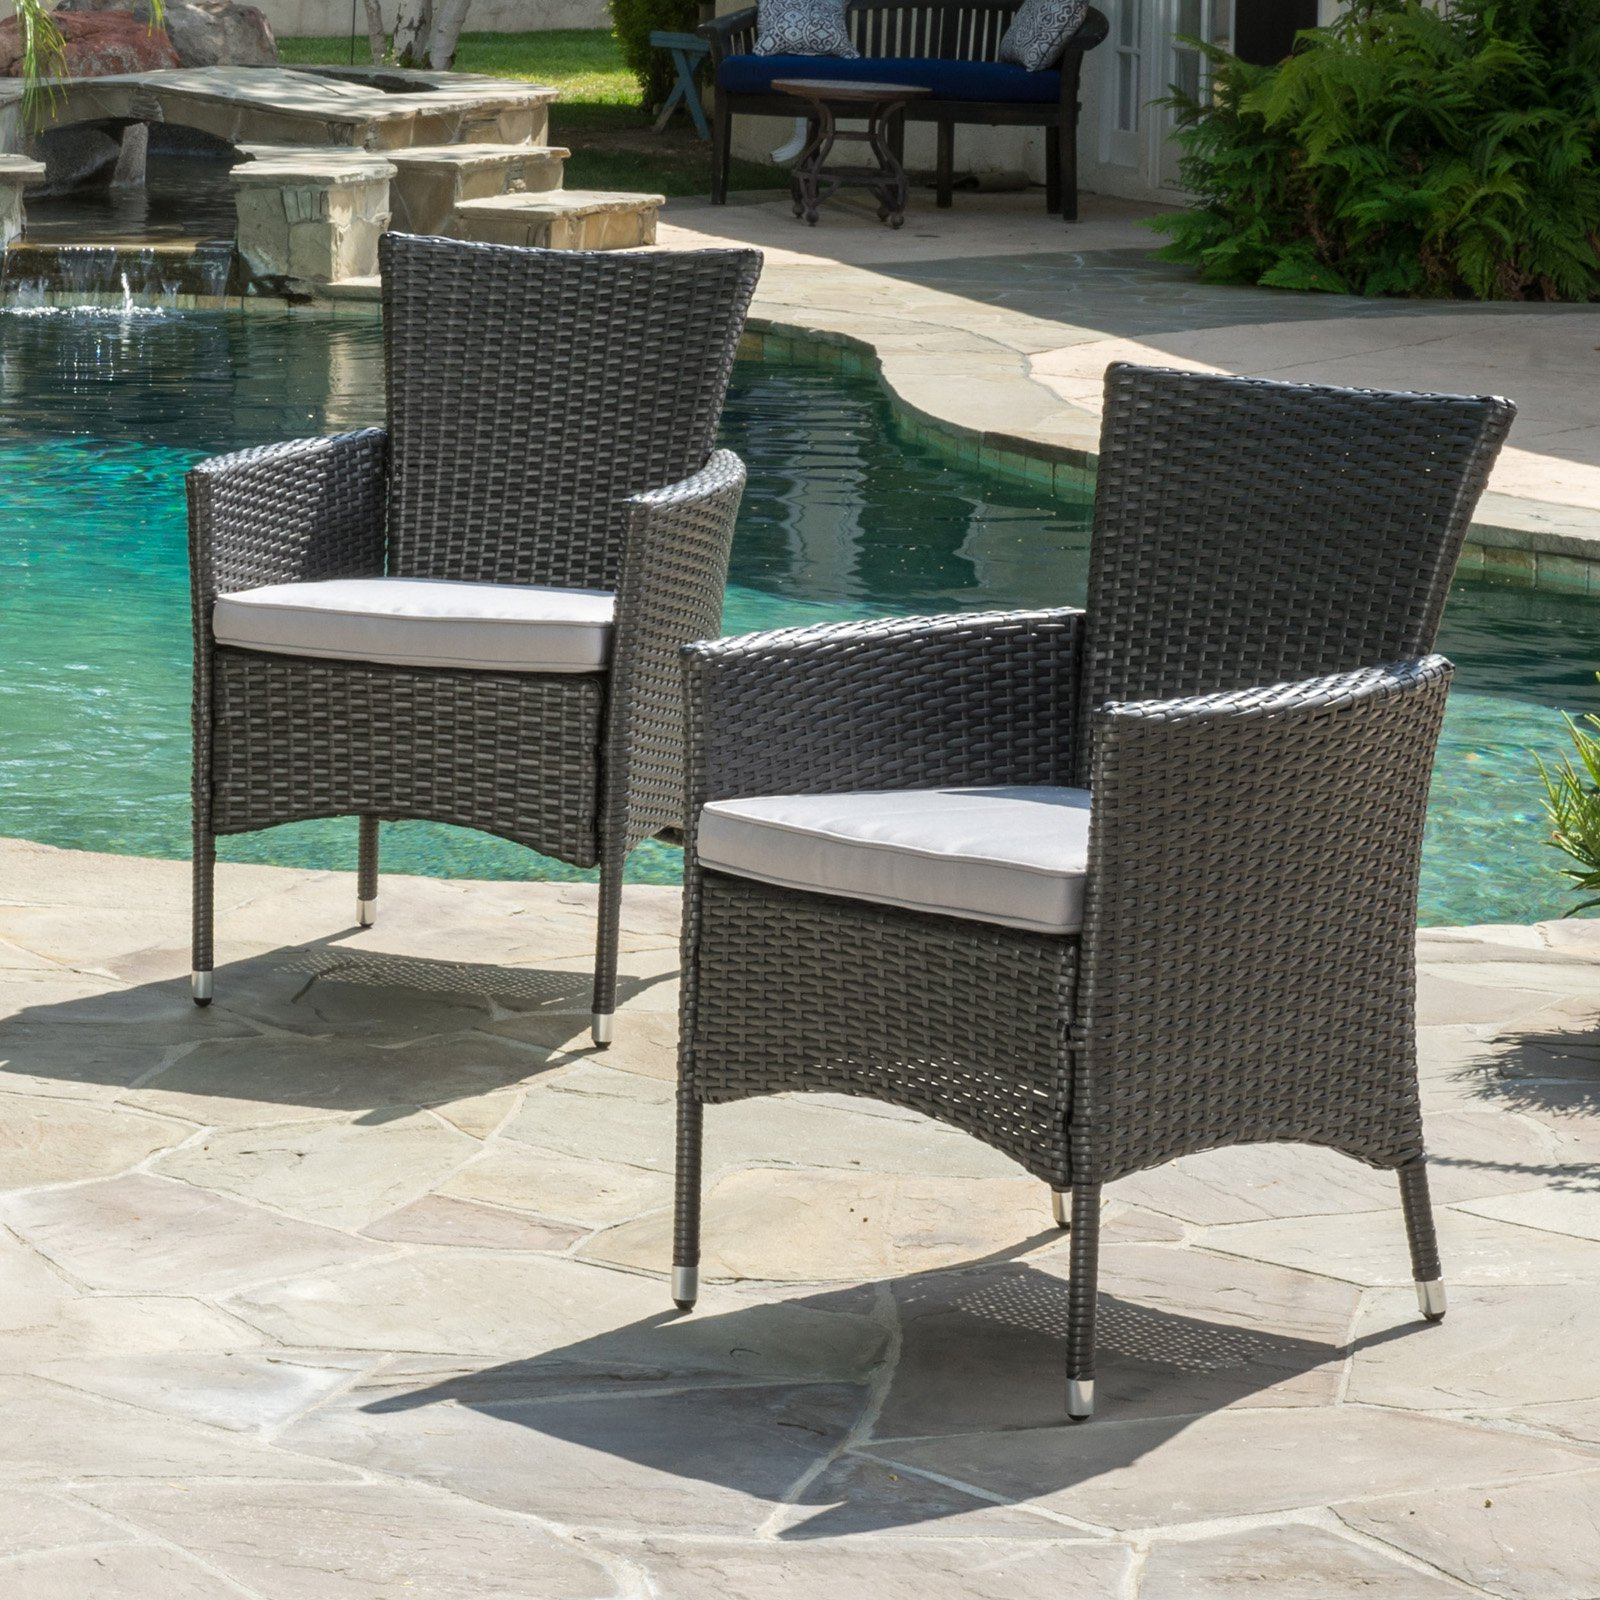 Malta Wicker Dining Chairs - Set of 2